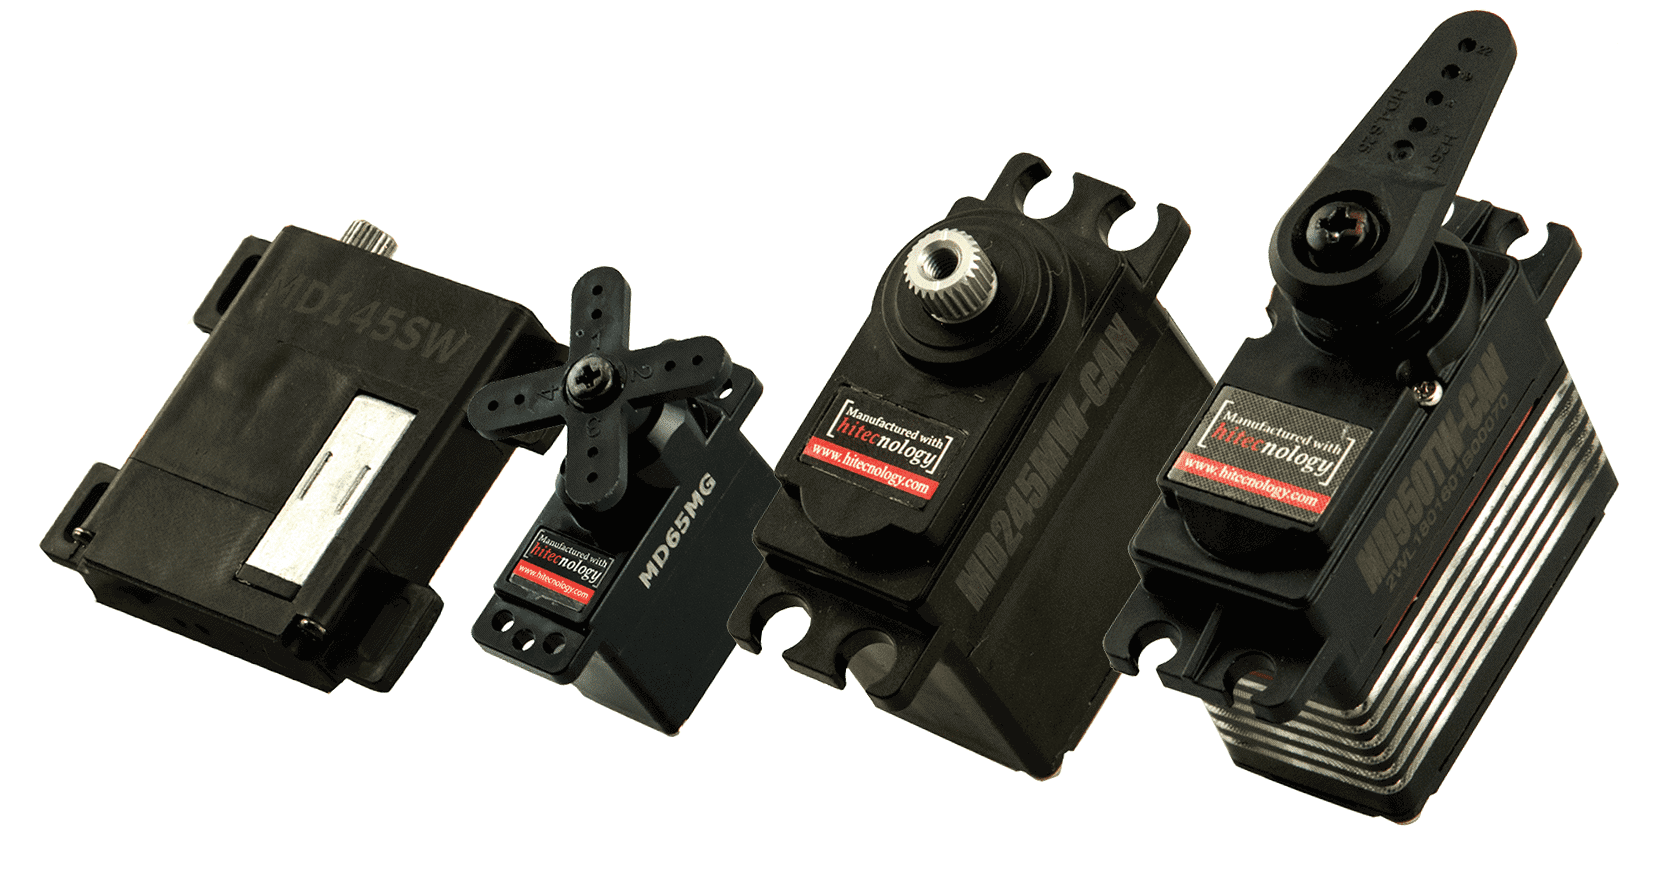 MD-Series IP65-rated heavy-duty actuators